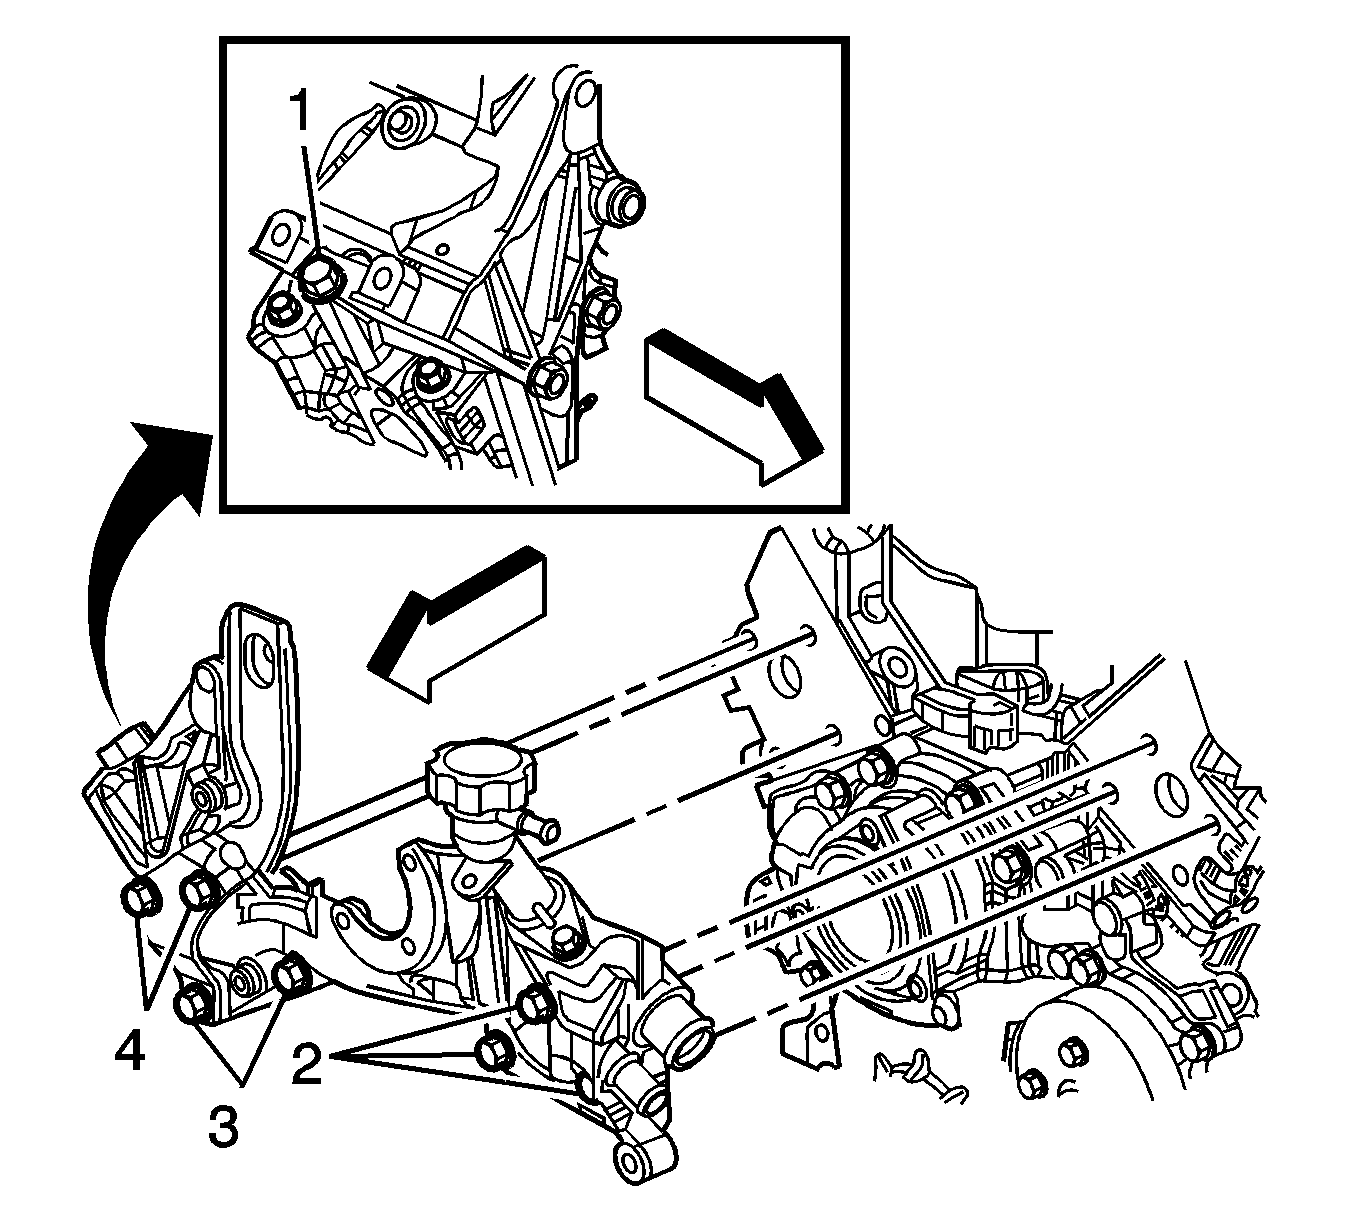 07 impala 3 5 engine diagram